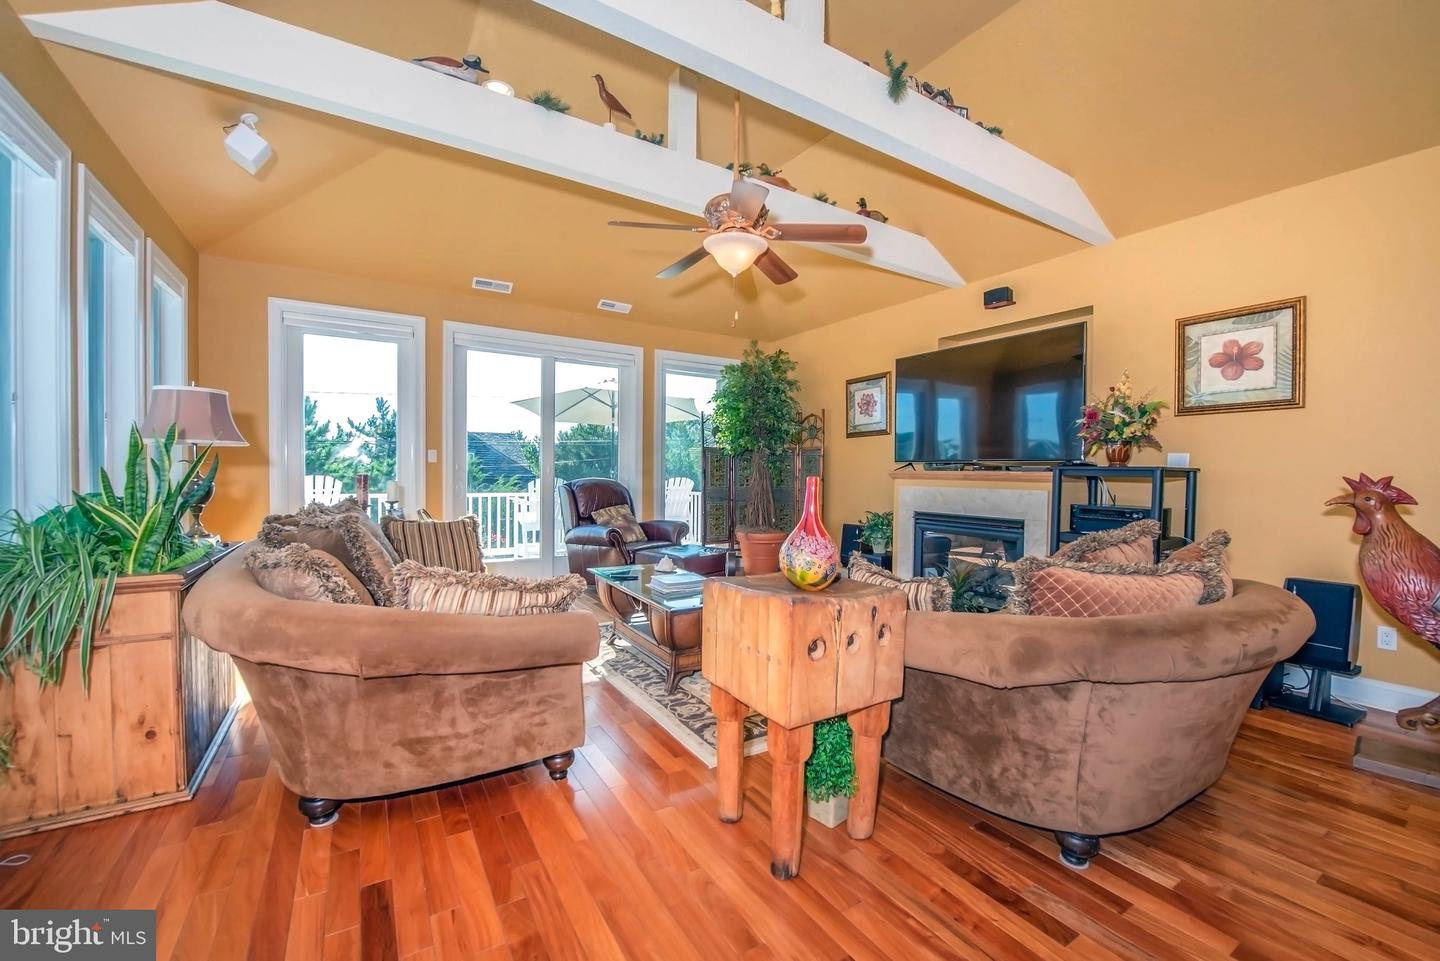 DESU147280-302007870592-2019-08-31-13-42-10 810 Bunting Ave | Fenwick Island, DE Real Estate For Sale | MLS# Desu147280  - Jack Lingo REALTOR